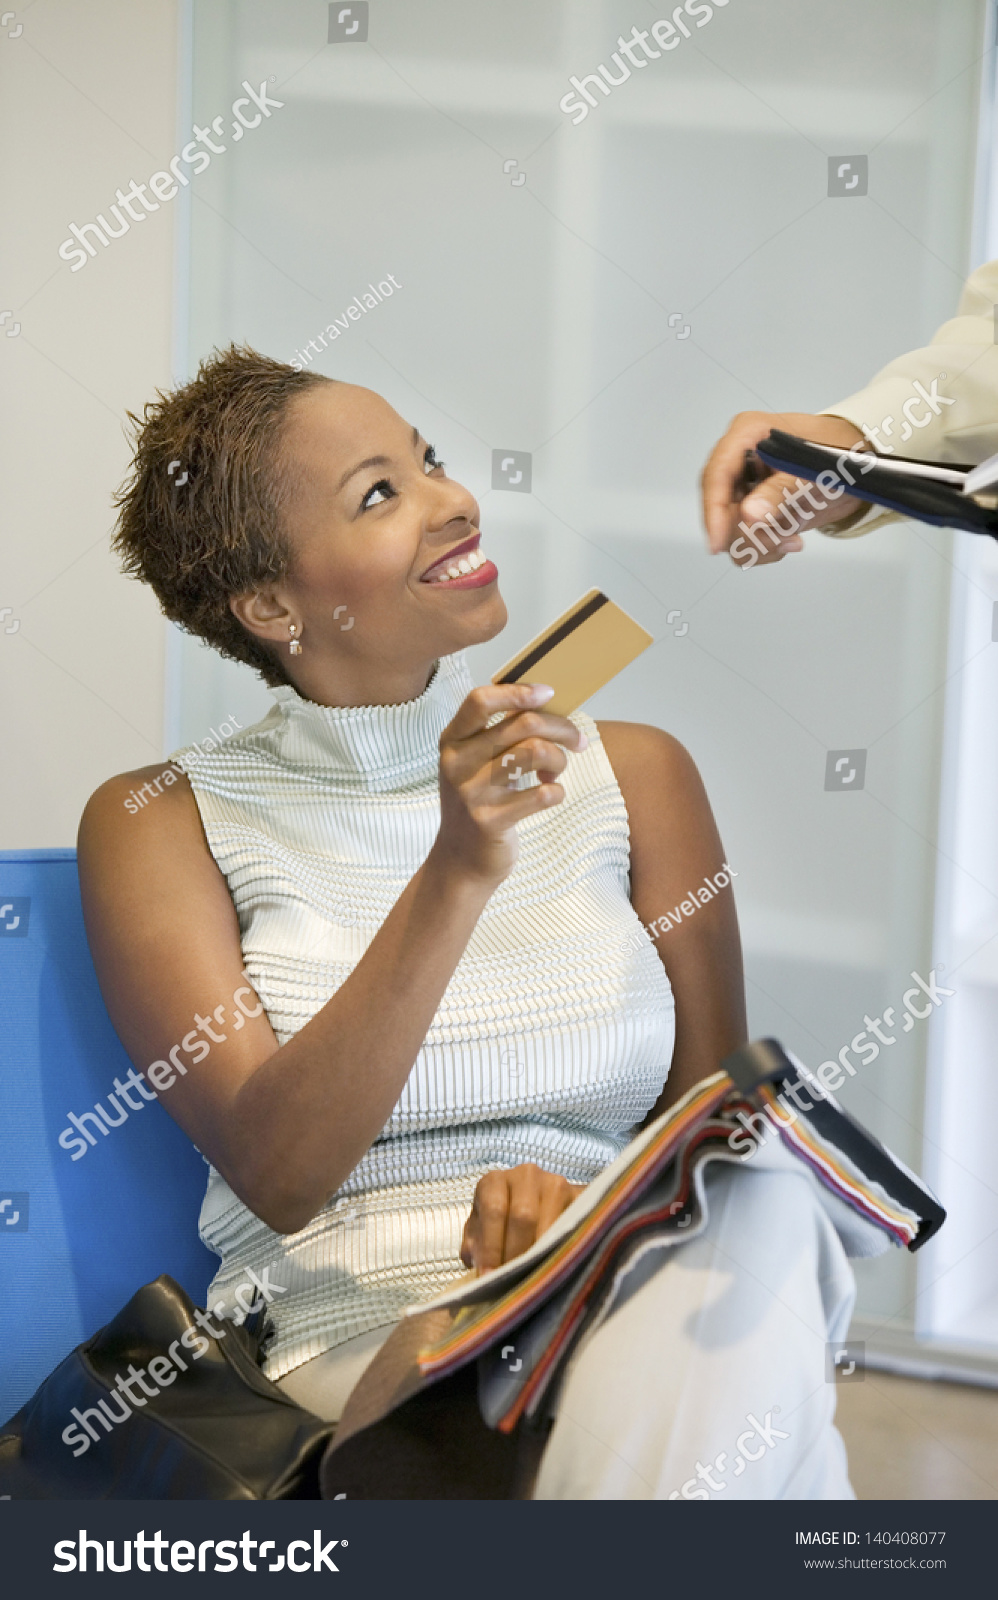 African American Woman Making A Purchase With Credit Card In The Furniture Store Stock Photo